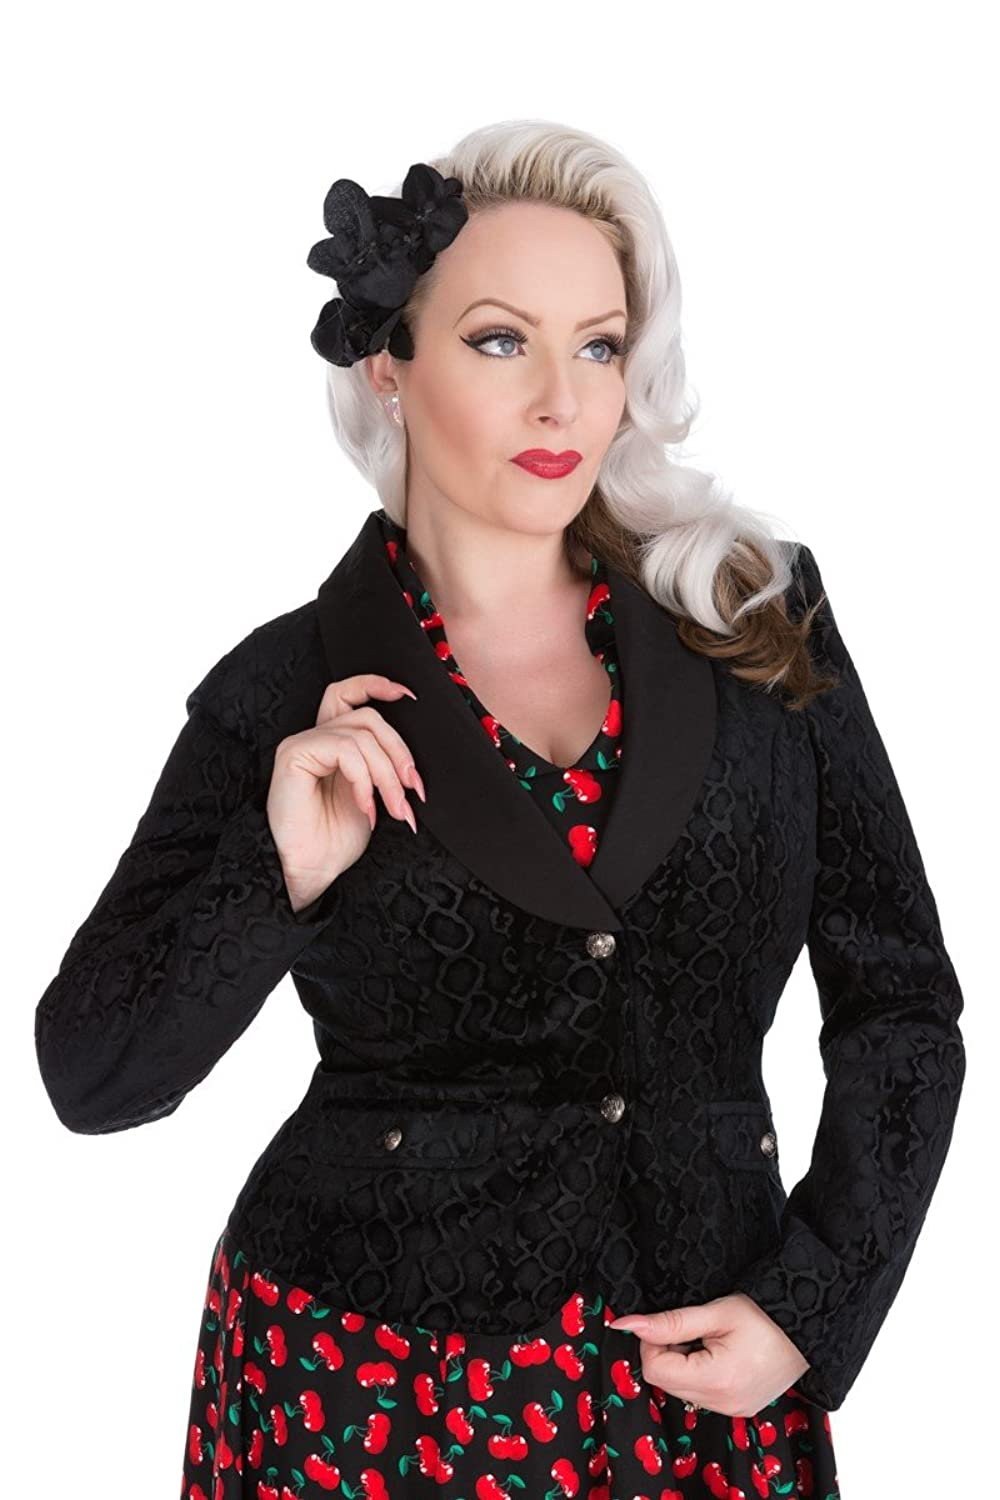 Steampunk Plus Size Clothing & Costumes Hearts & Roses Black Leopard Flock Jacket (Shipped from The US and US Sizes) $49.88 AT vintagedancer.com